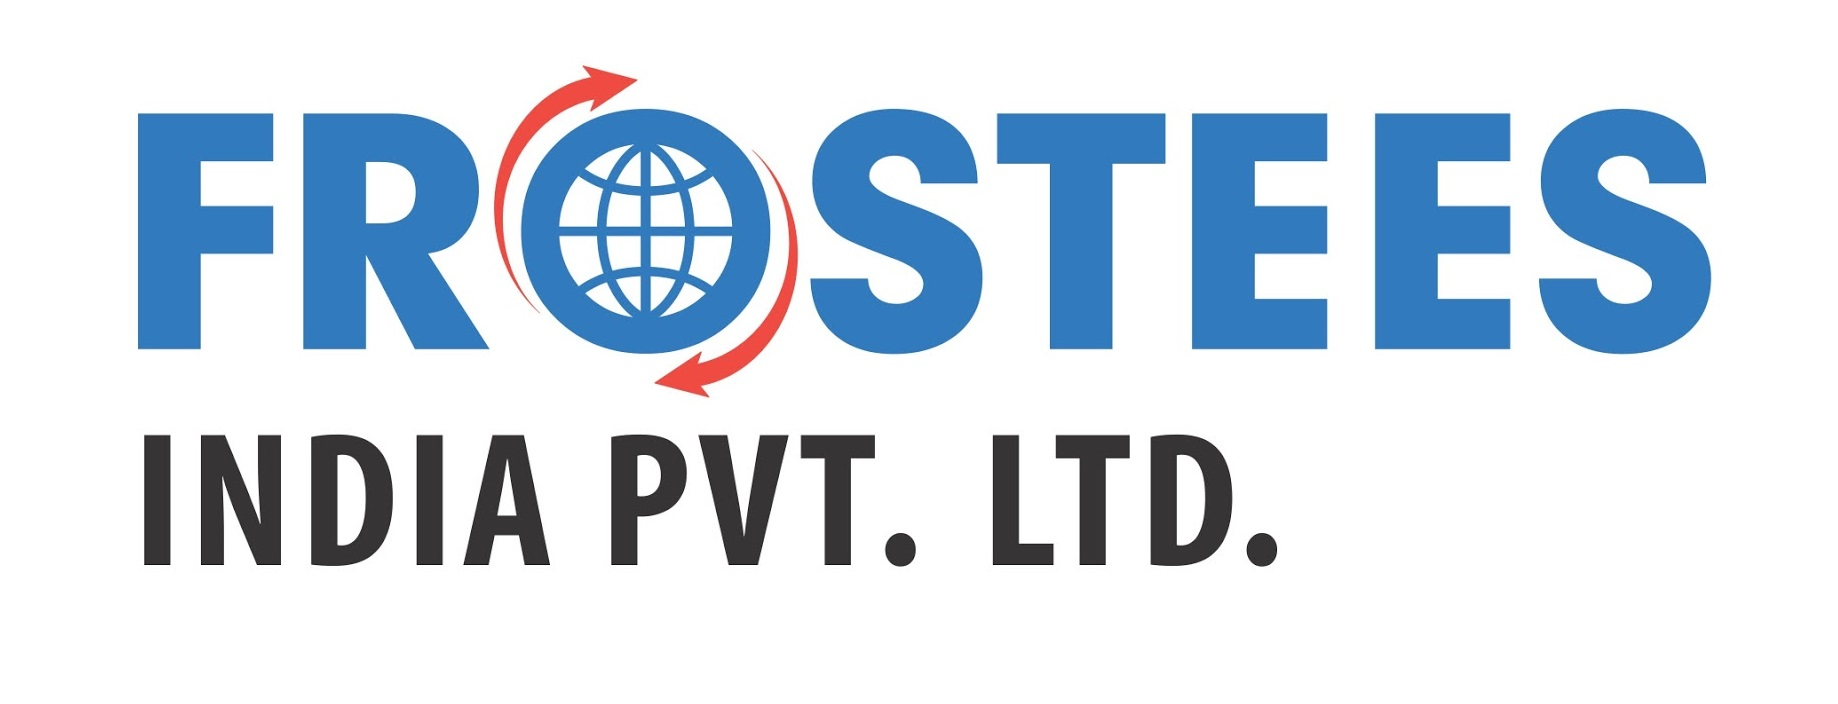 Frostees India Pvt.Ltd